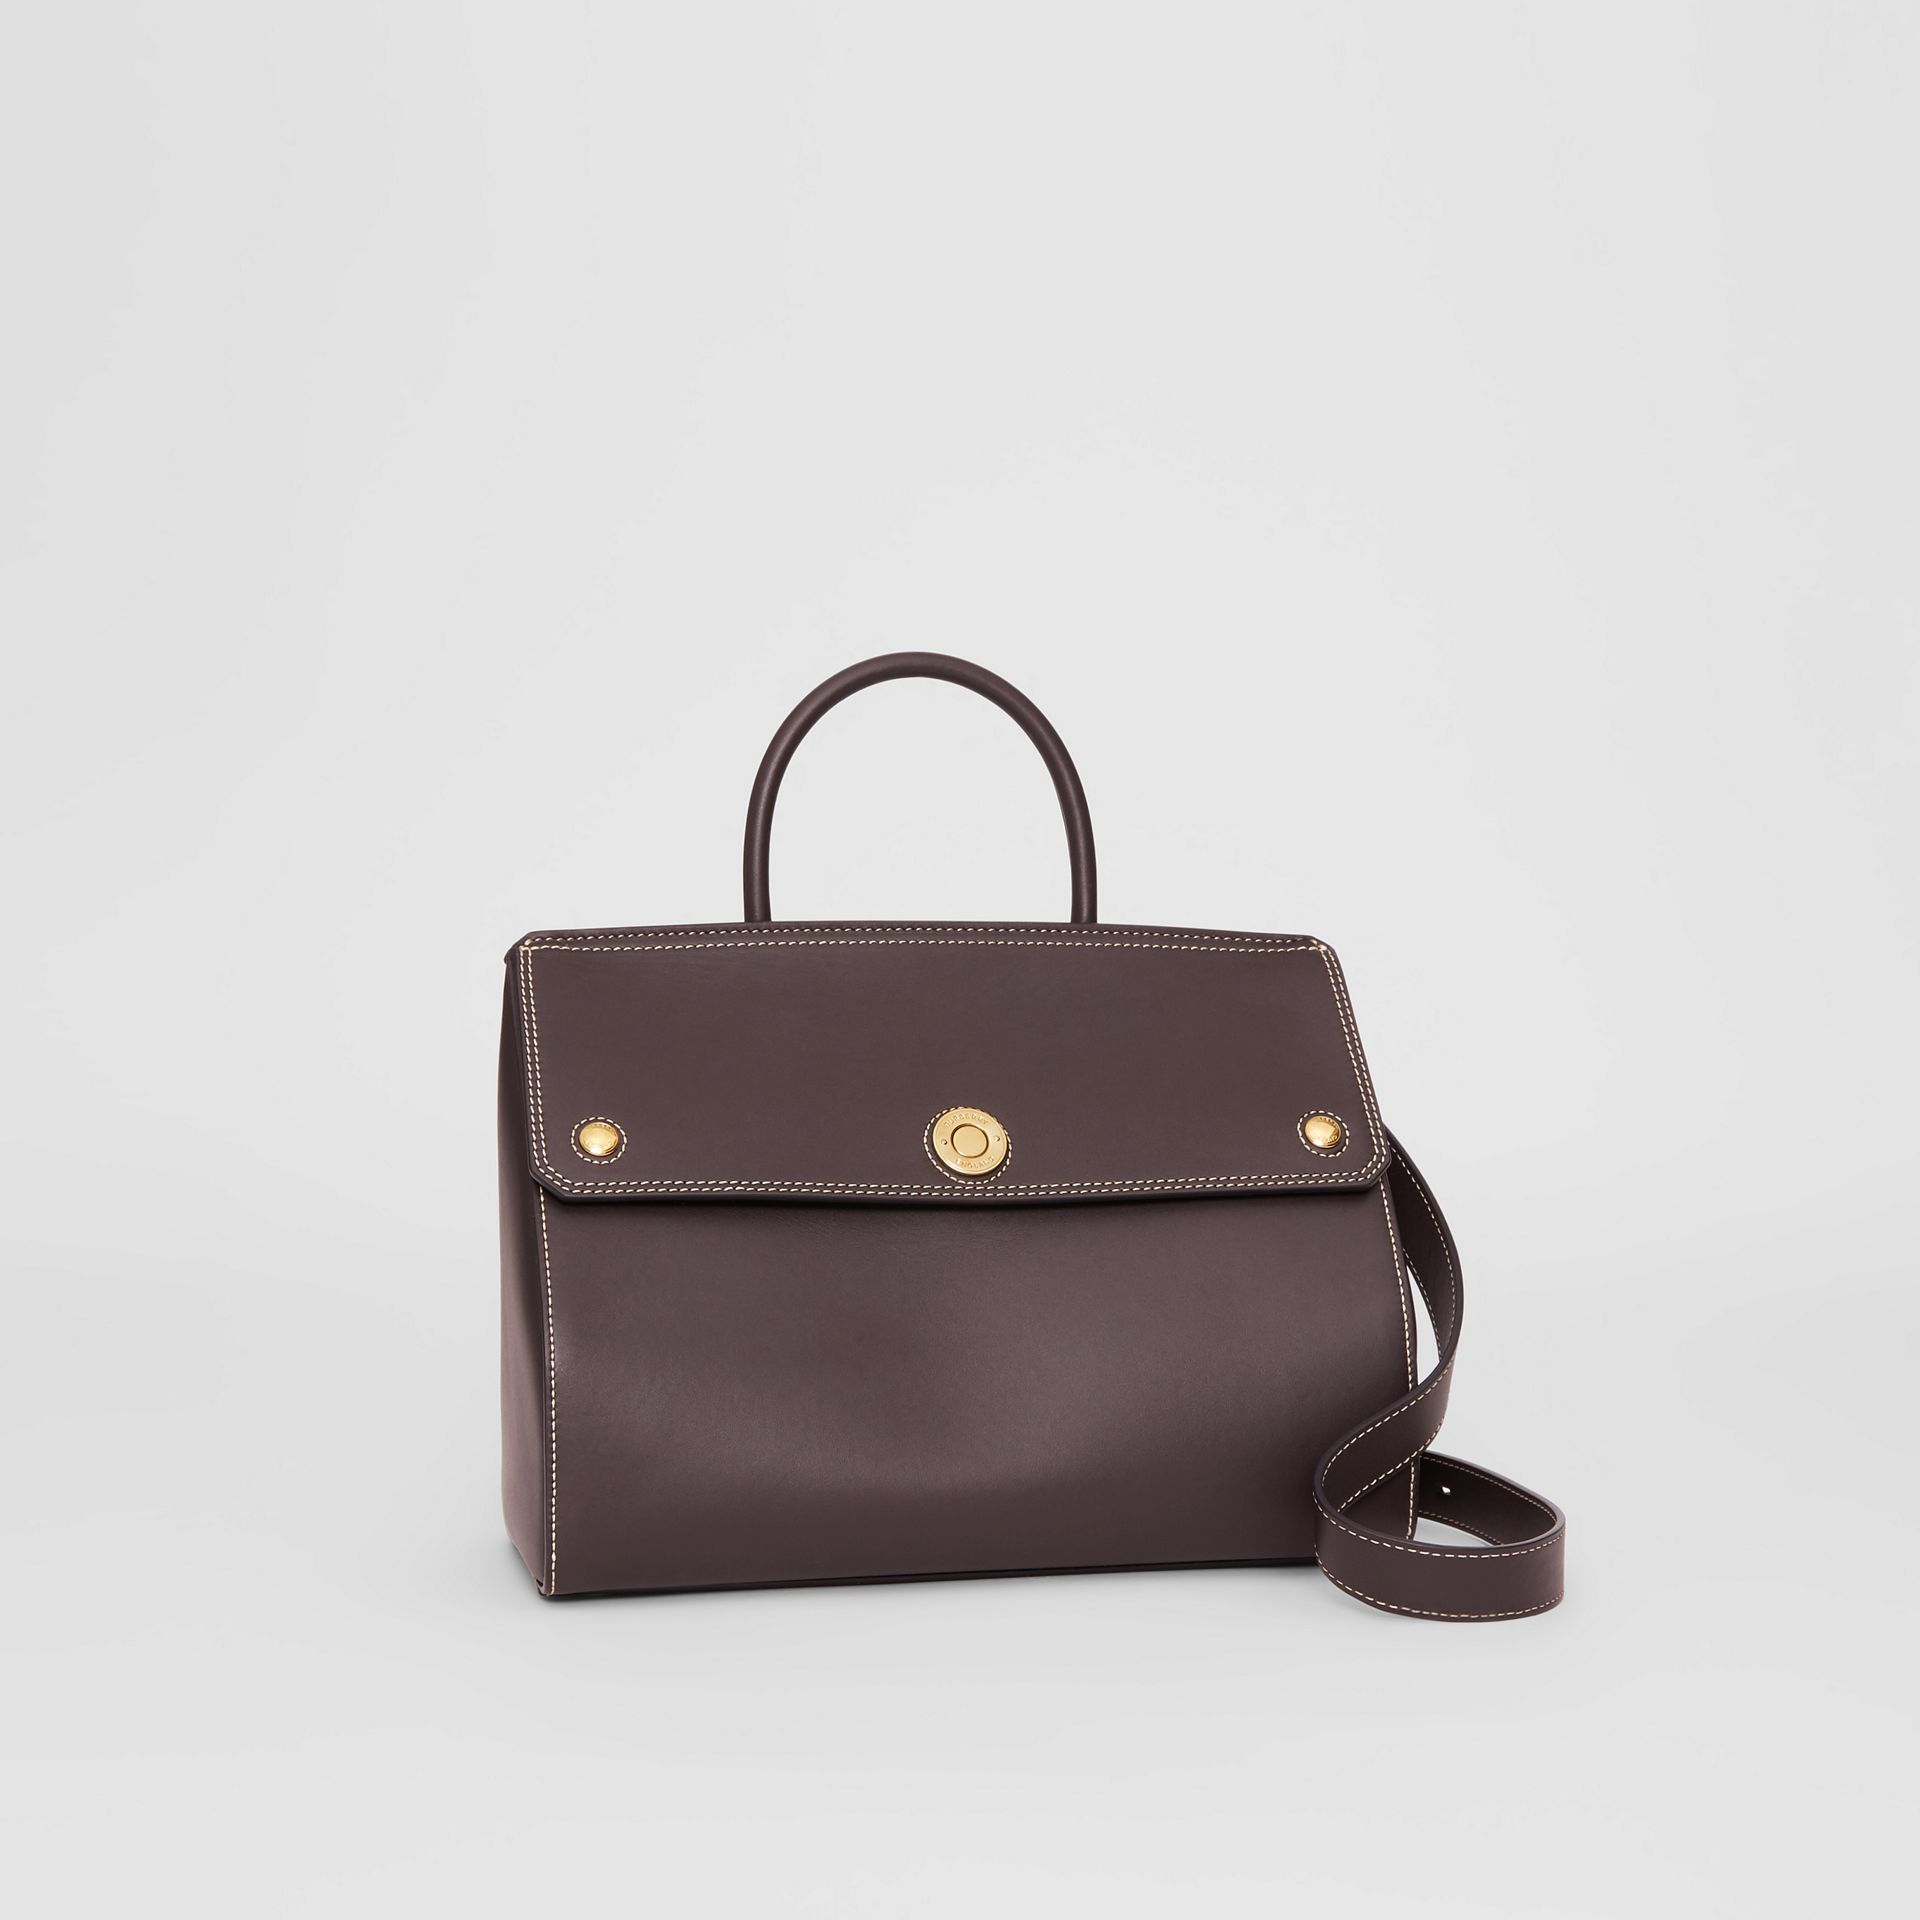 Small Leather Elizabeth Bag in Coffee - Women | Burberry - gallery image 6